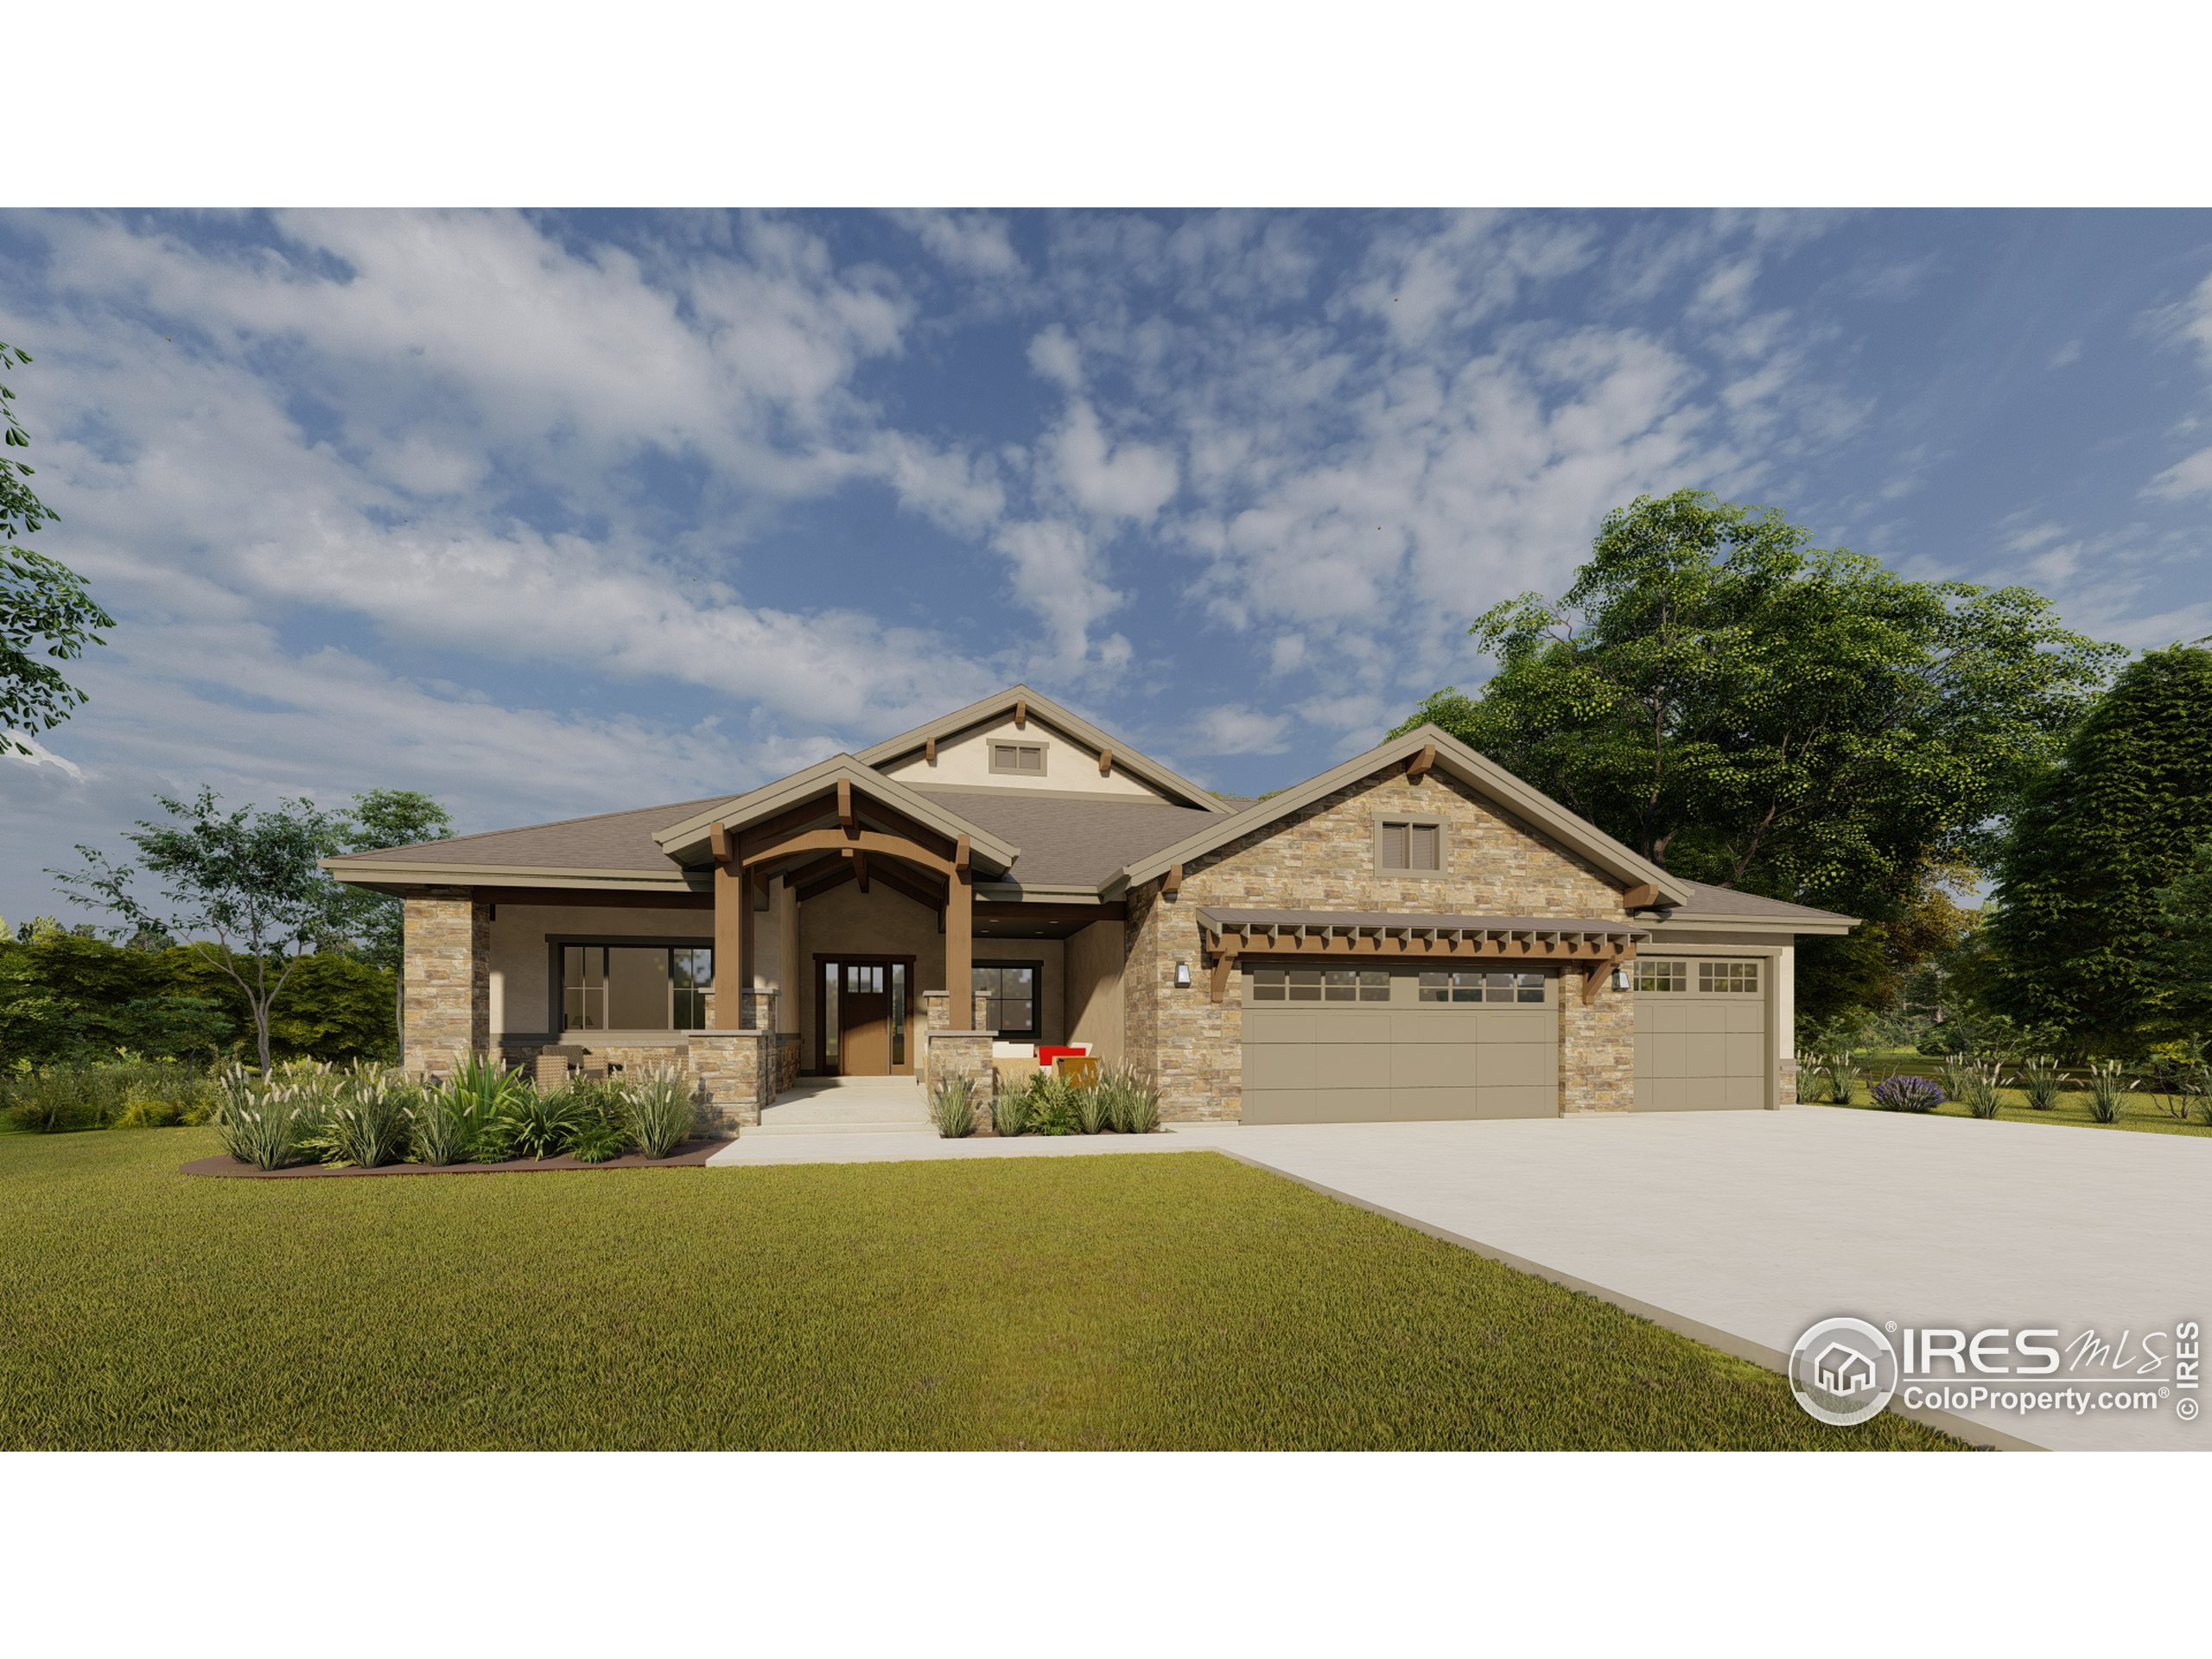 32795 Eagleview Dr, Greeley, CO 80631